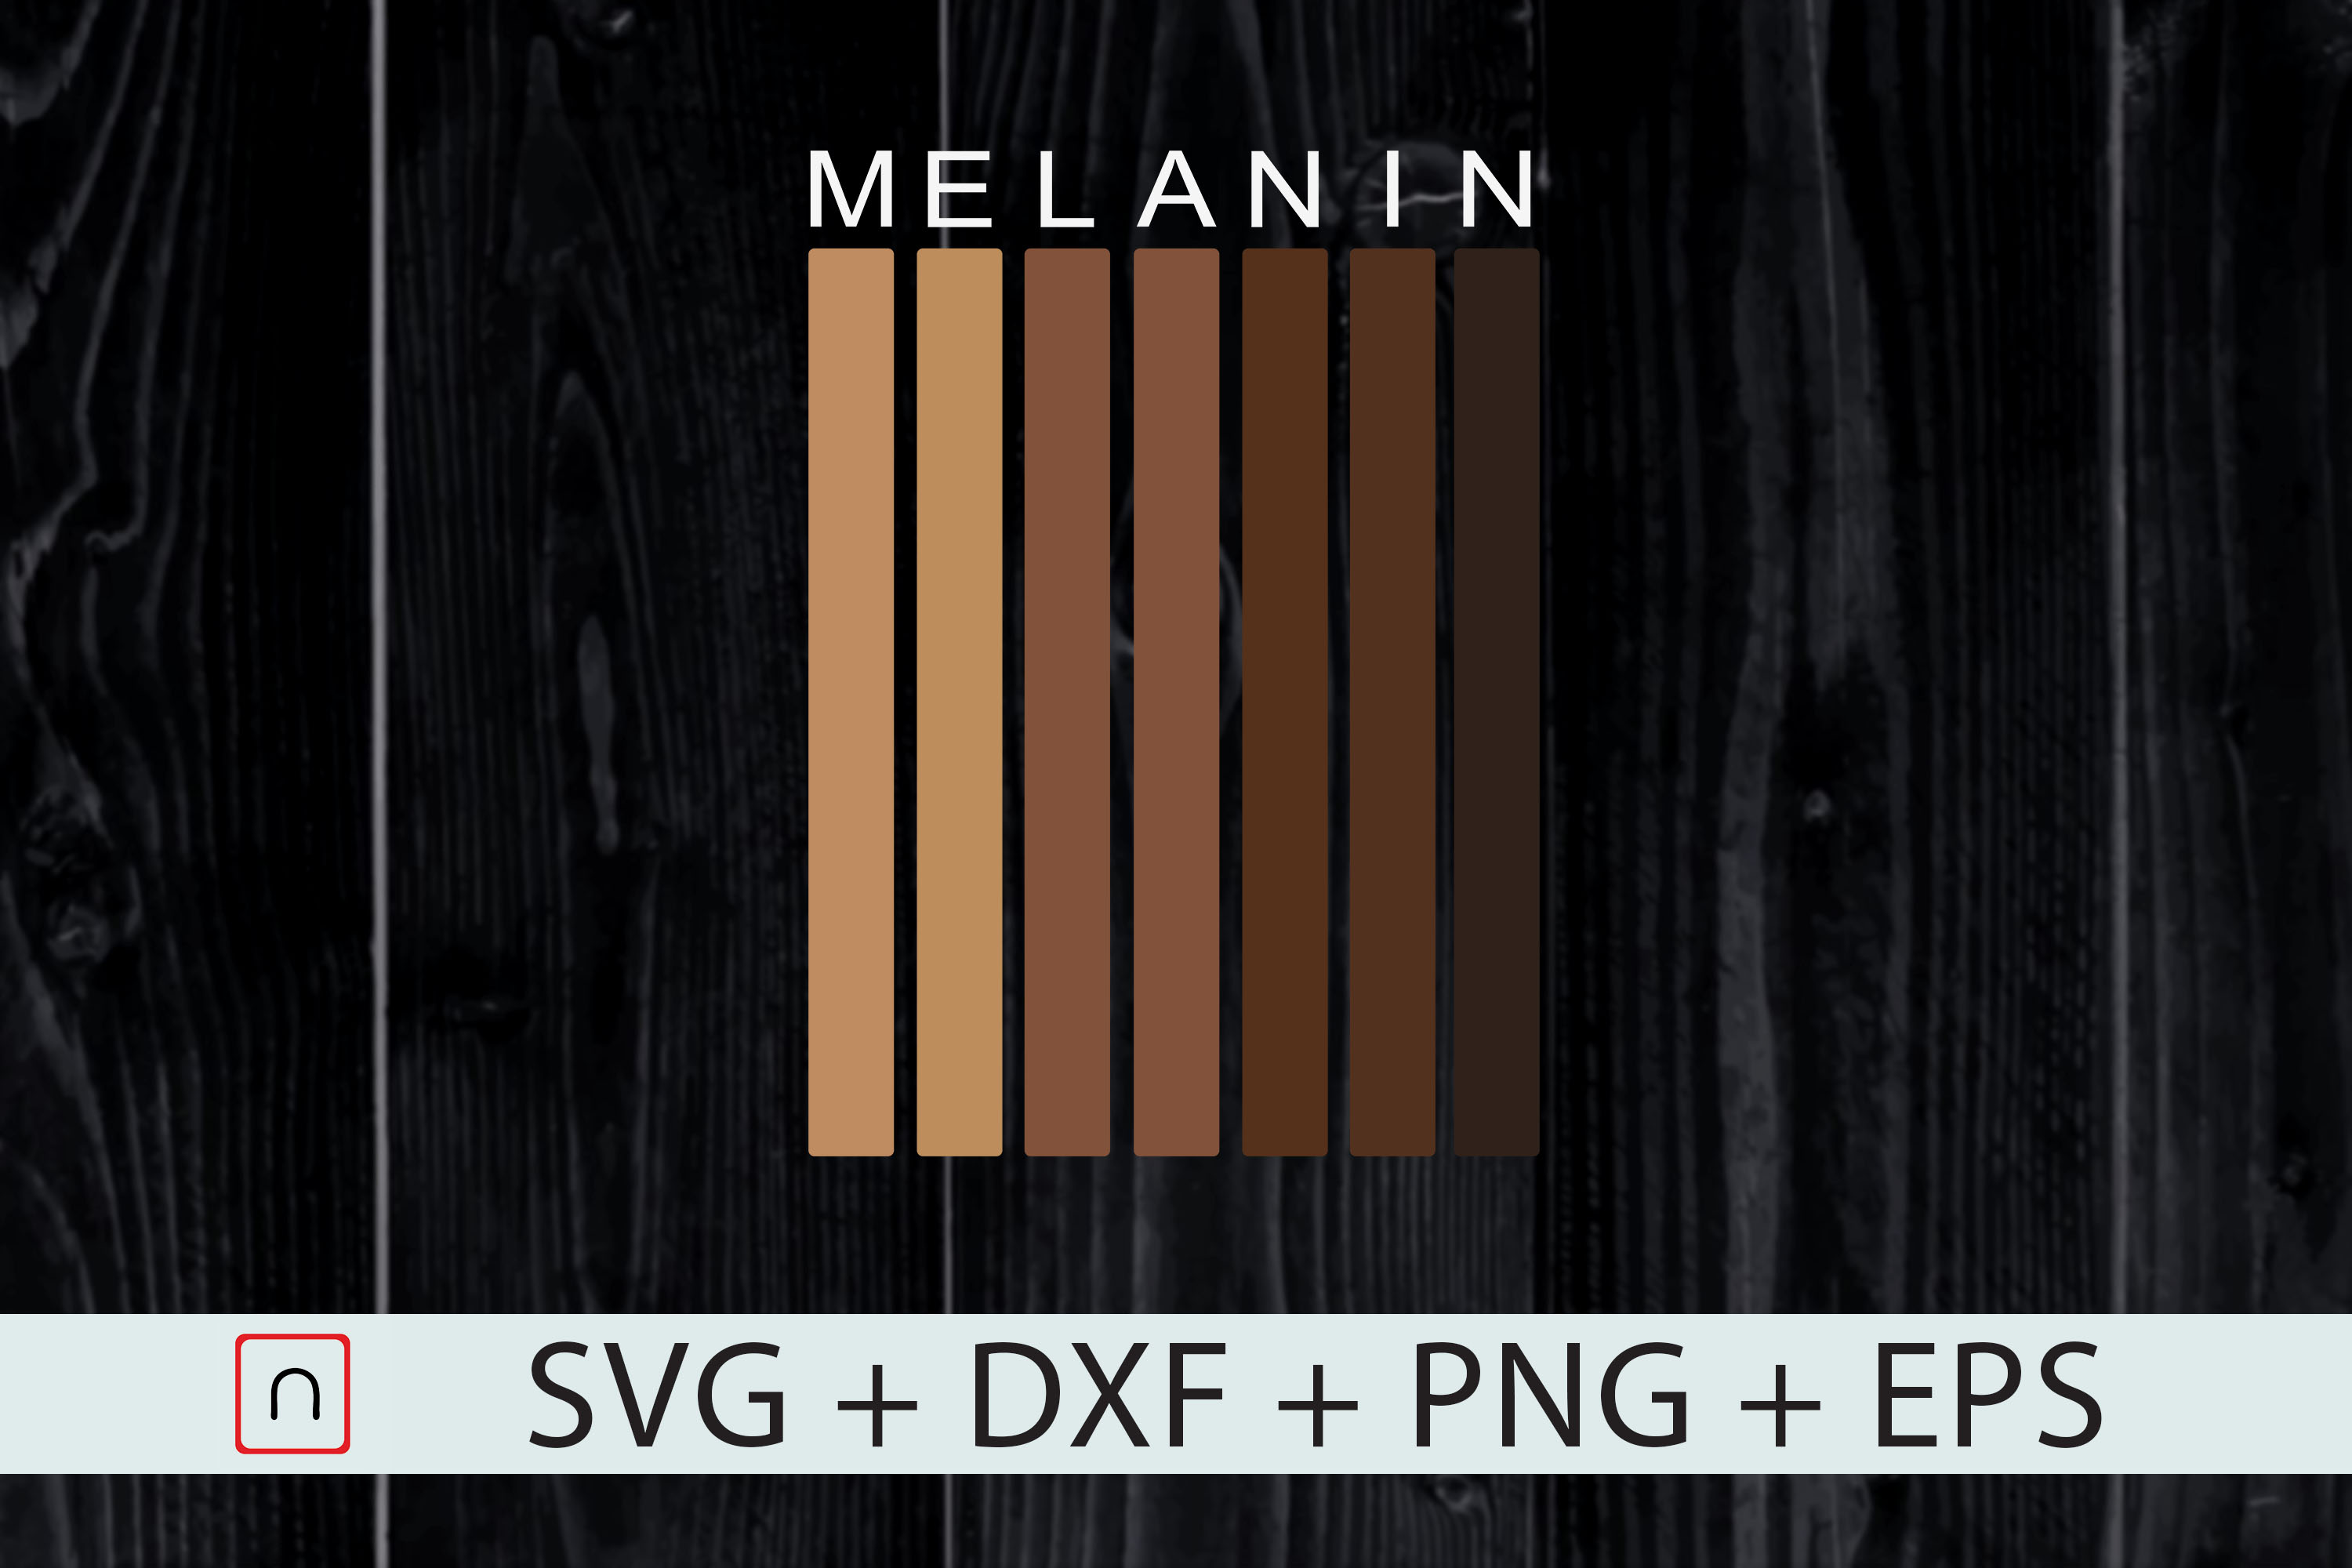 Download Free Melanin Dripping Black Queen Graphic By Novalia Creative Fabrica for Cricut Explore, Silhouette and other cutting machines.